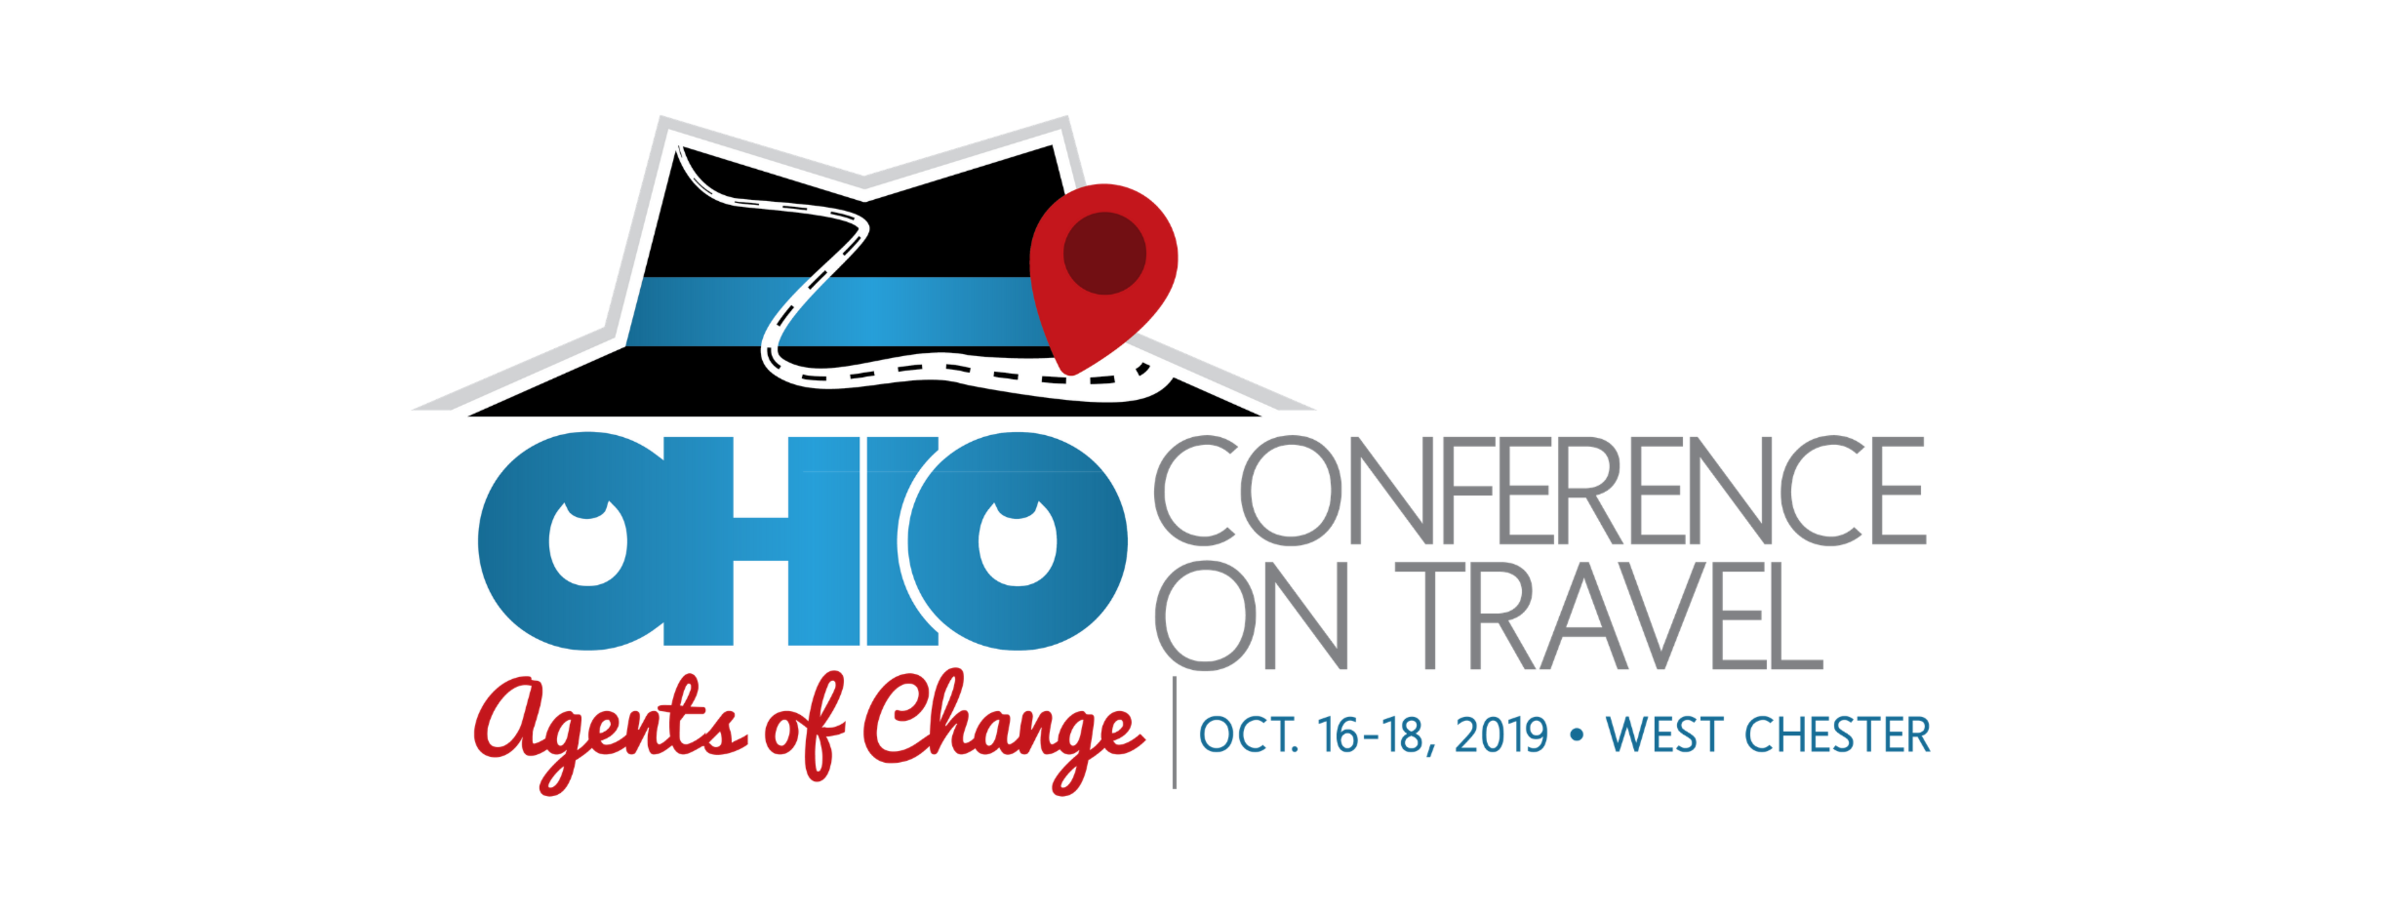 Register for the Ohio Conference on Travel